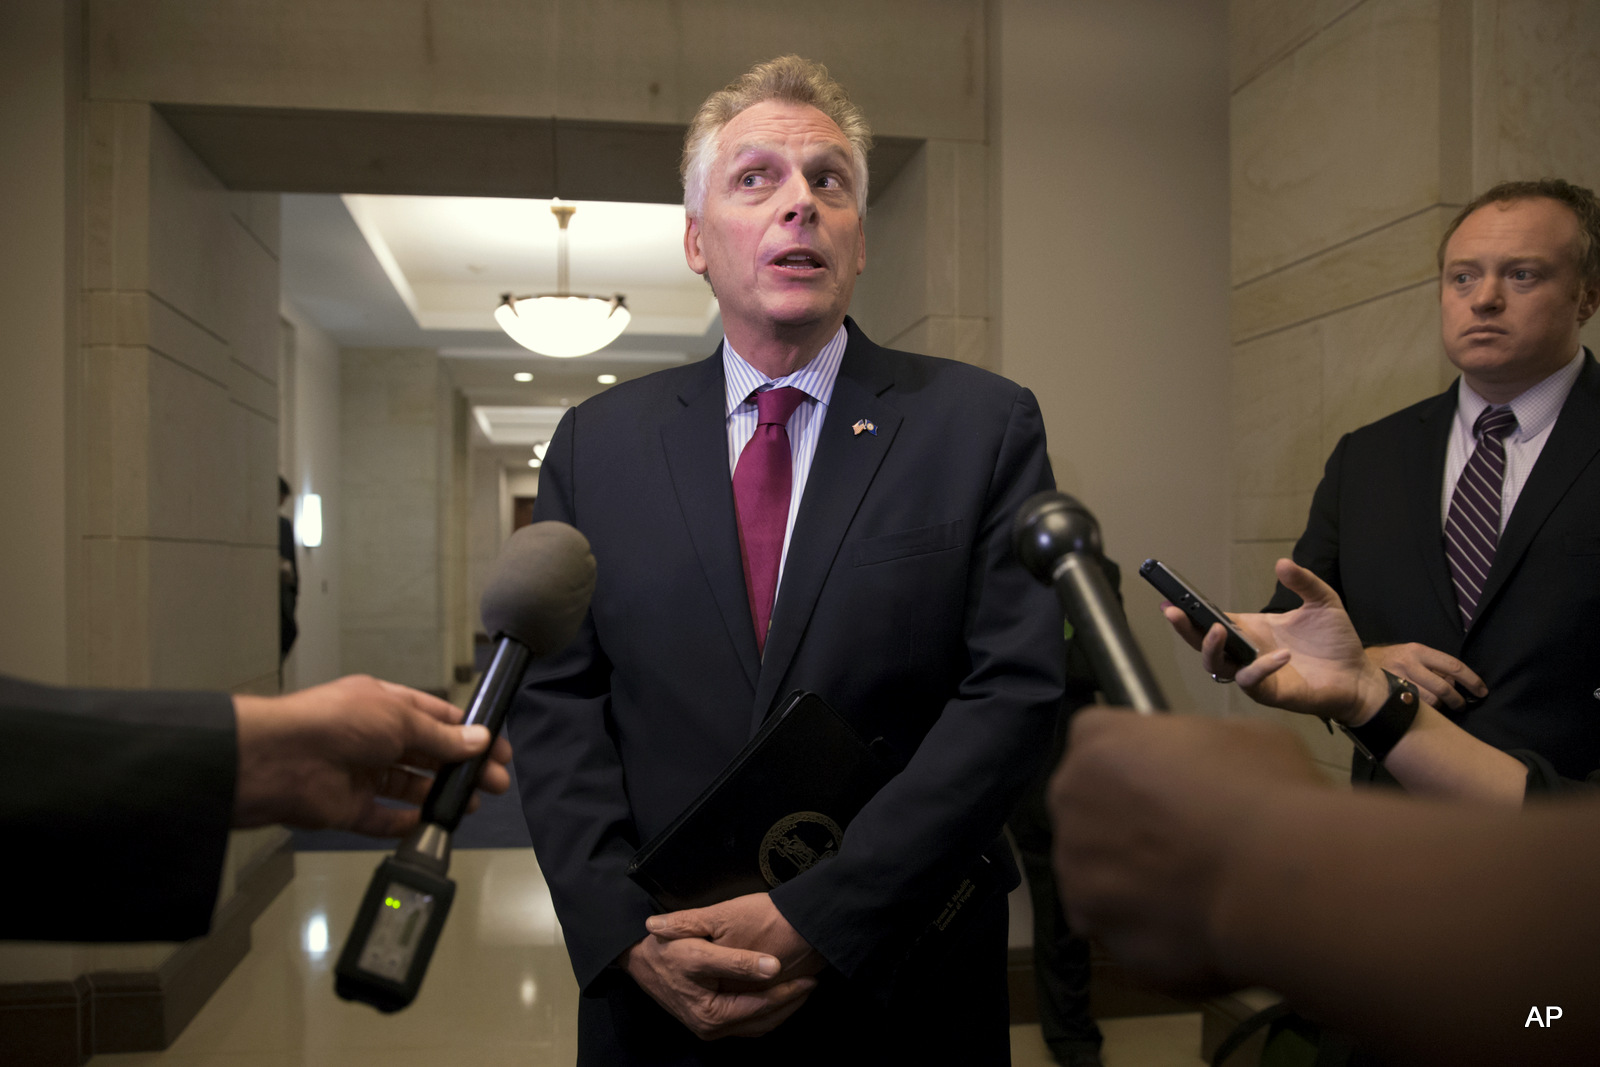 Virginia Gov. Terry McAuliffe speaks with reporters on Capitol Hill in Washington.  McAuliffe helped fund the failed state Senate campaign of the FBI official's wife who later go on to clear investigate Hillary Clinton's use of a private email server.